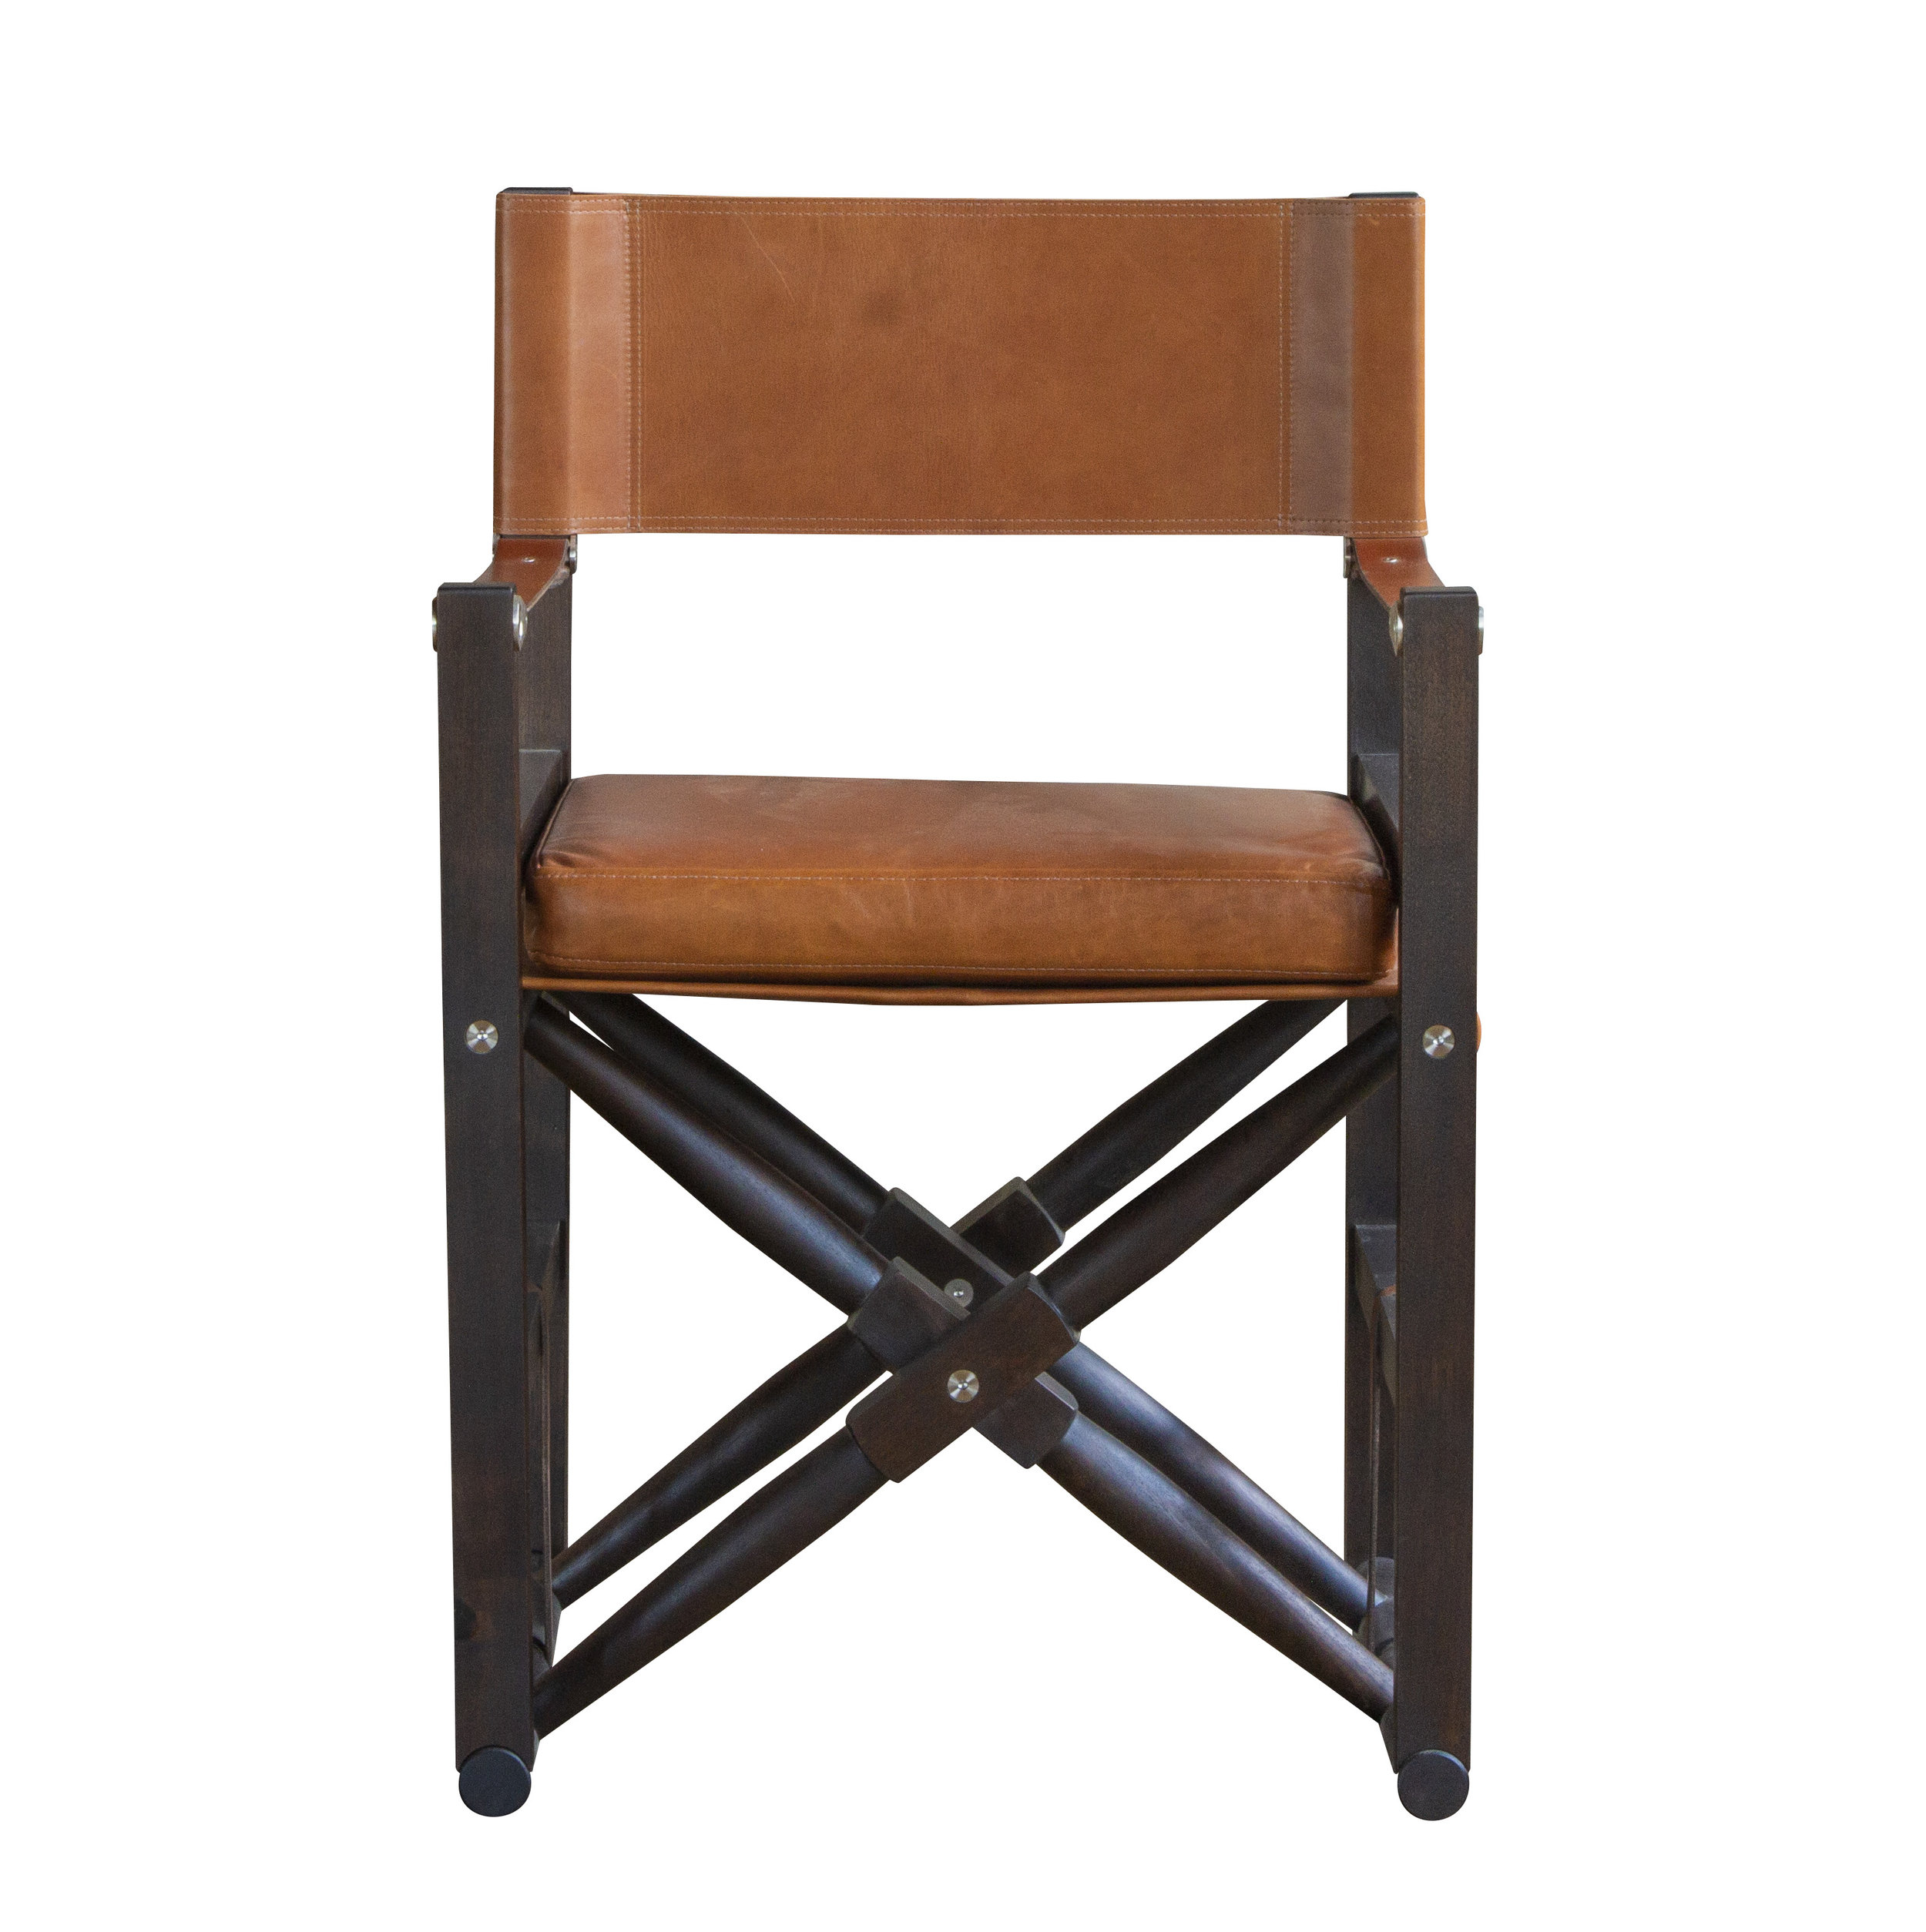 Cabourn Folding Chair